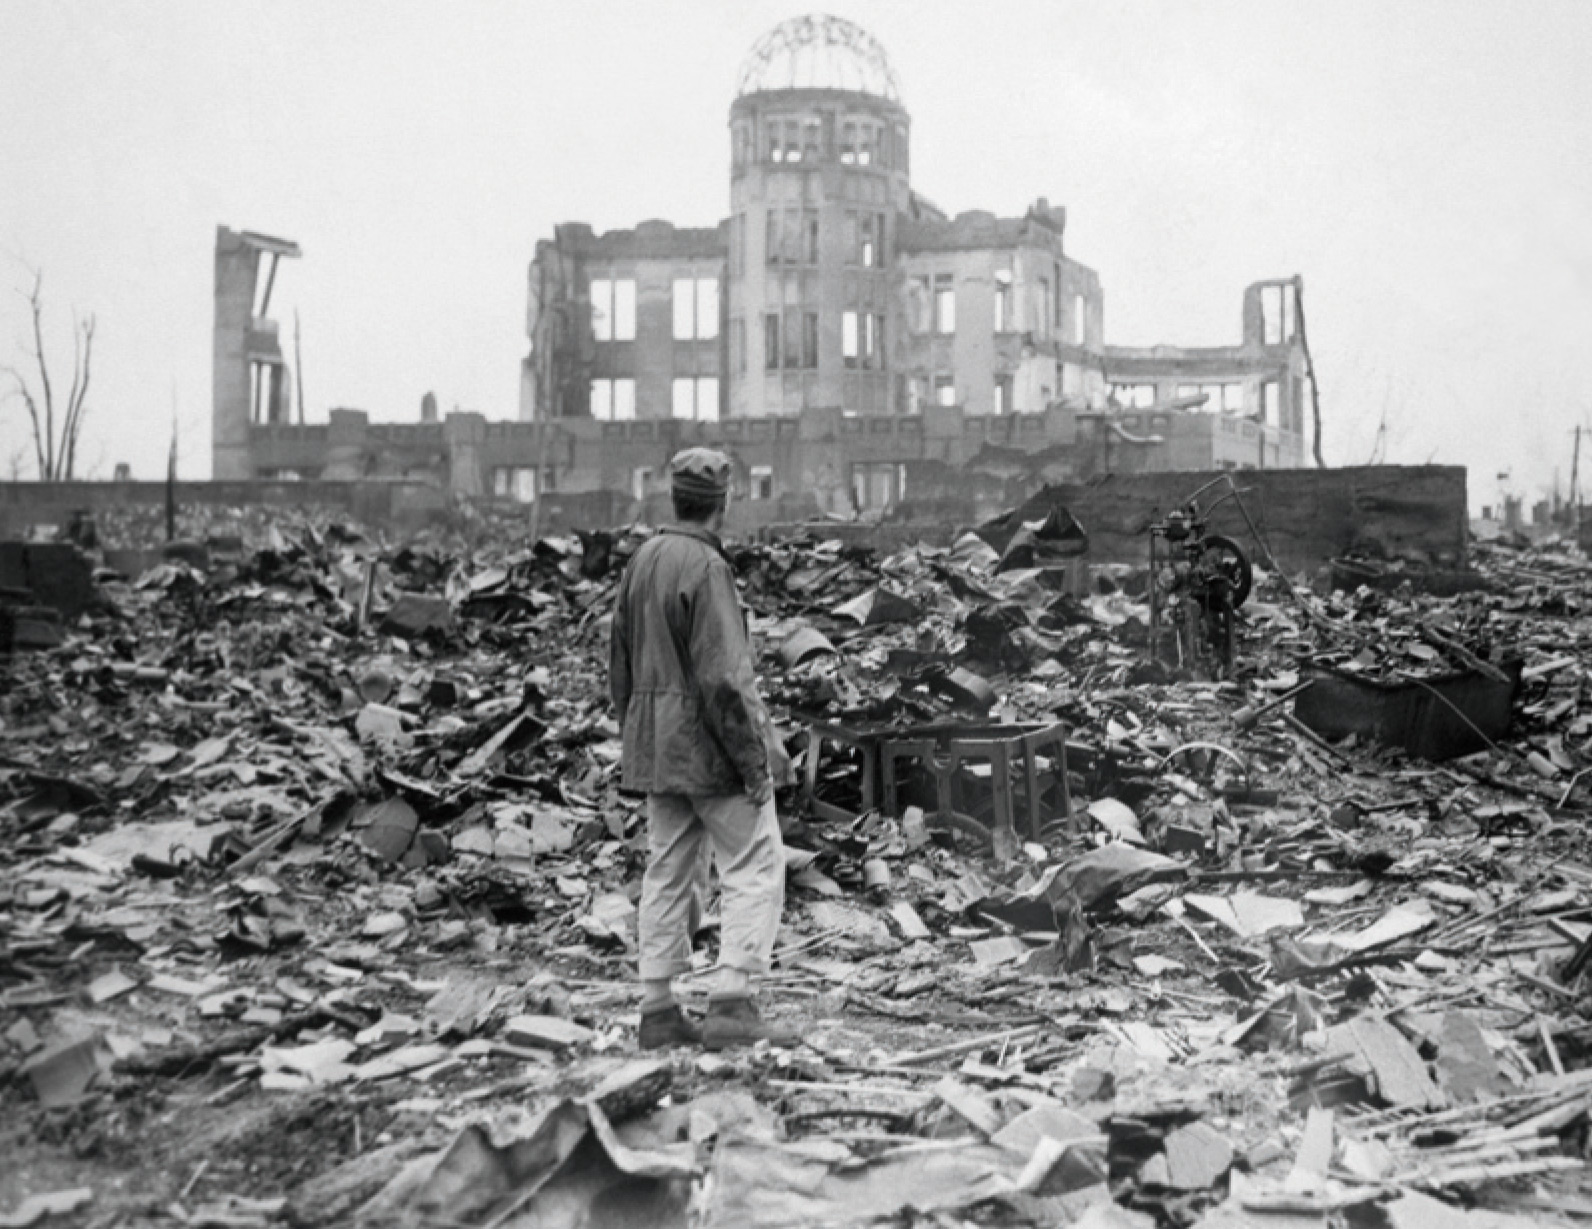 Hiroshima city centre: the ruined Museum of Science and Technology was the only building left standing.